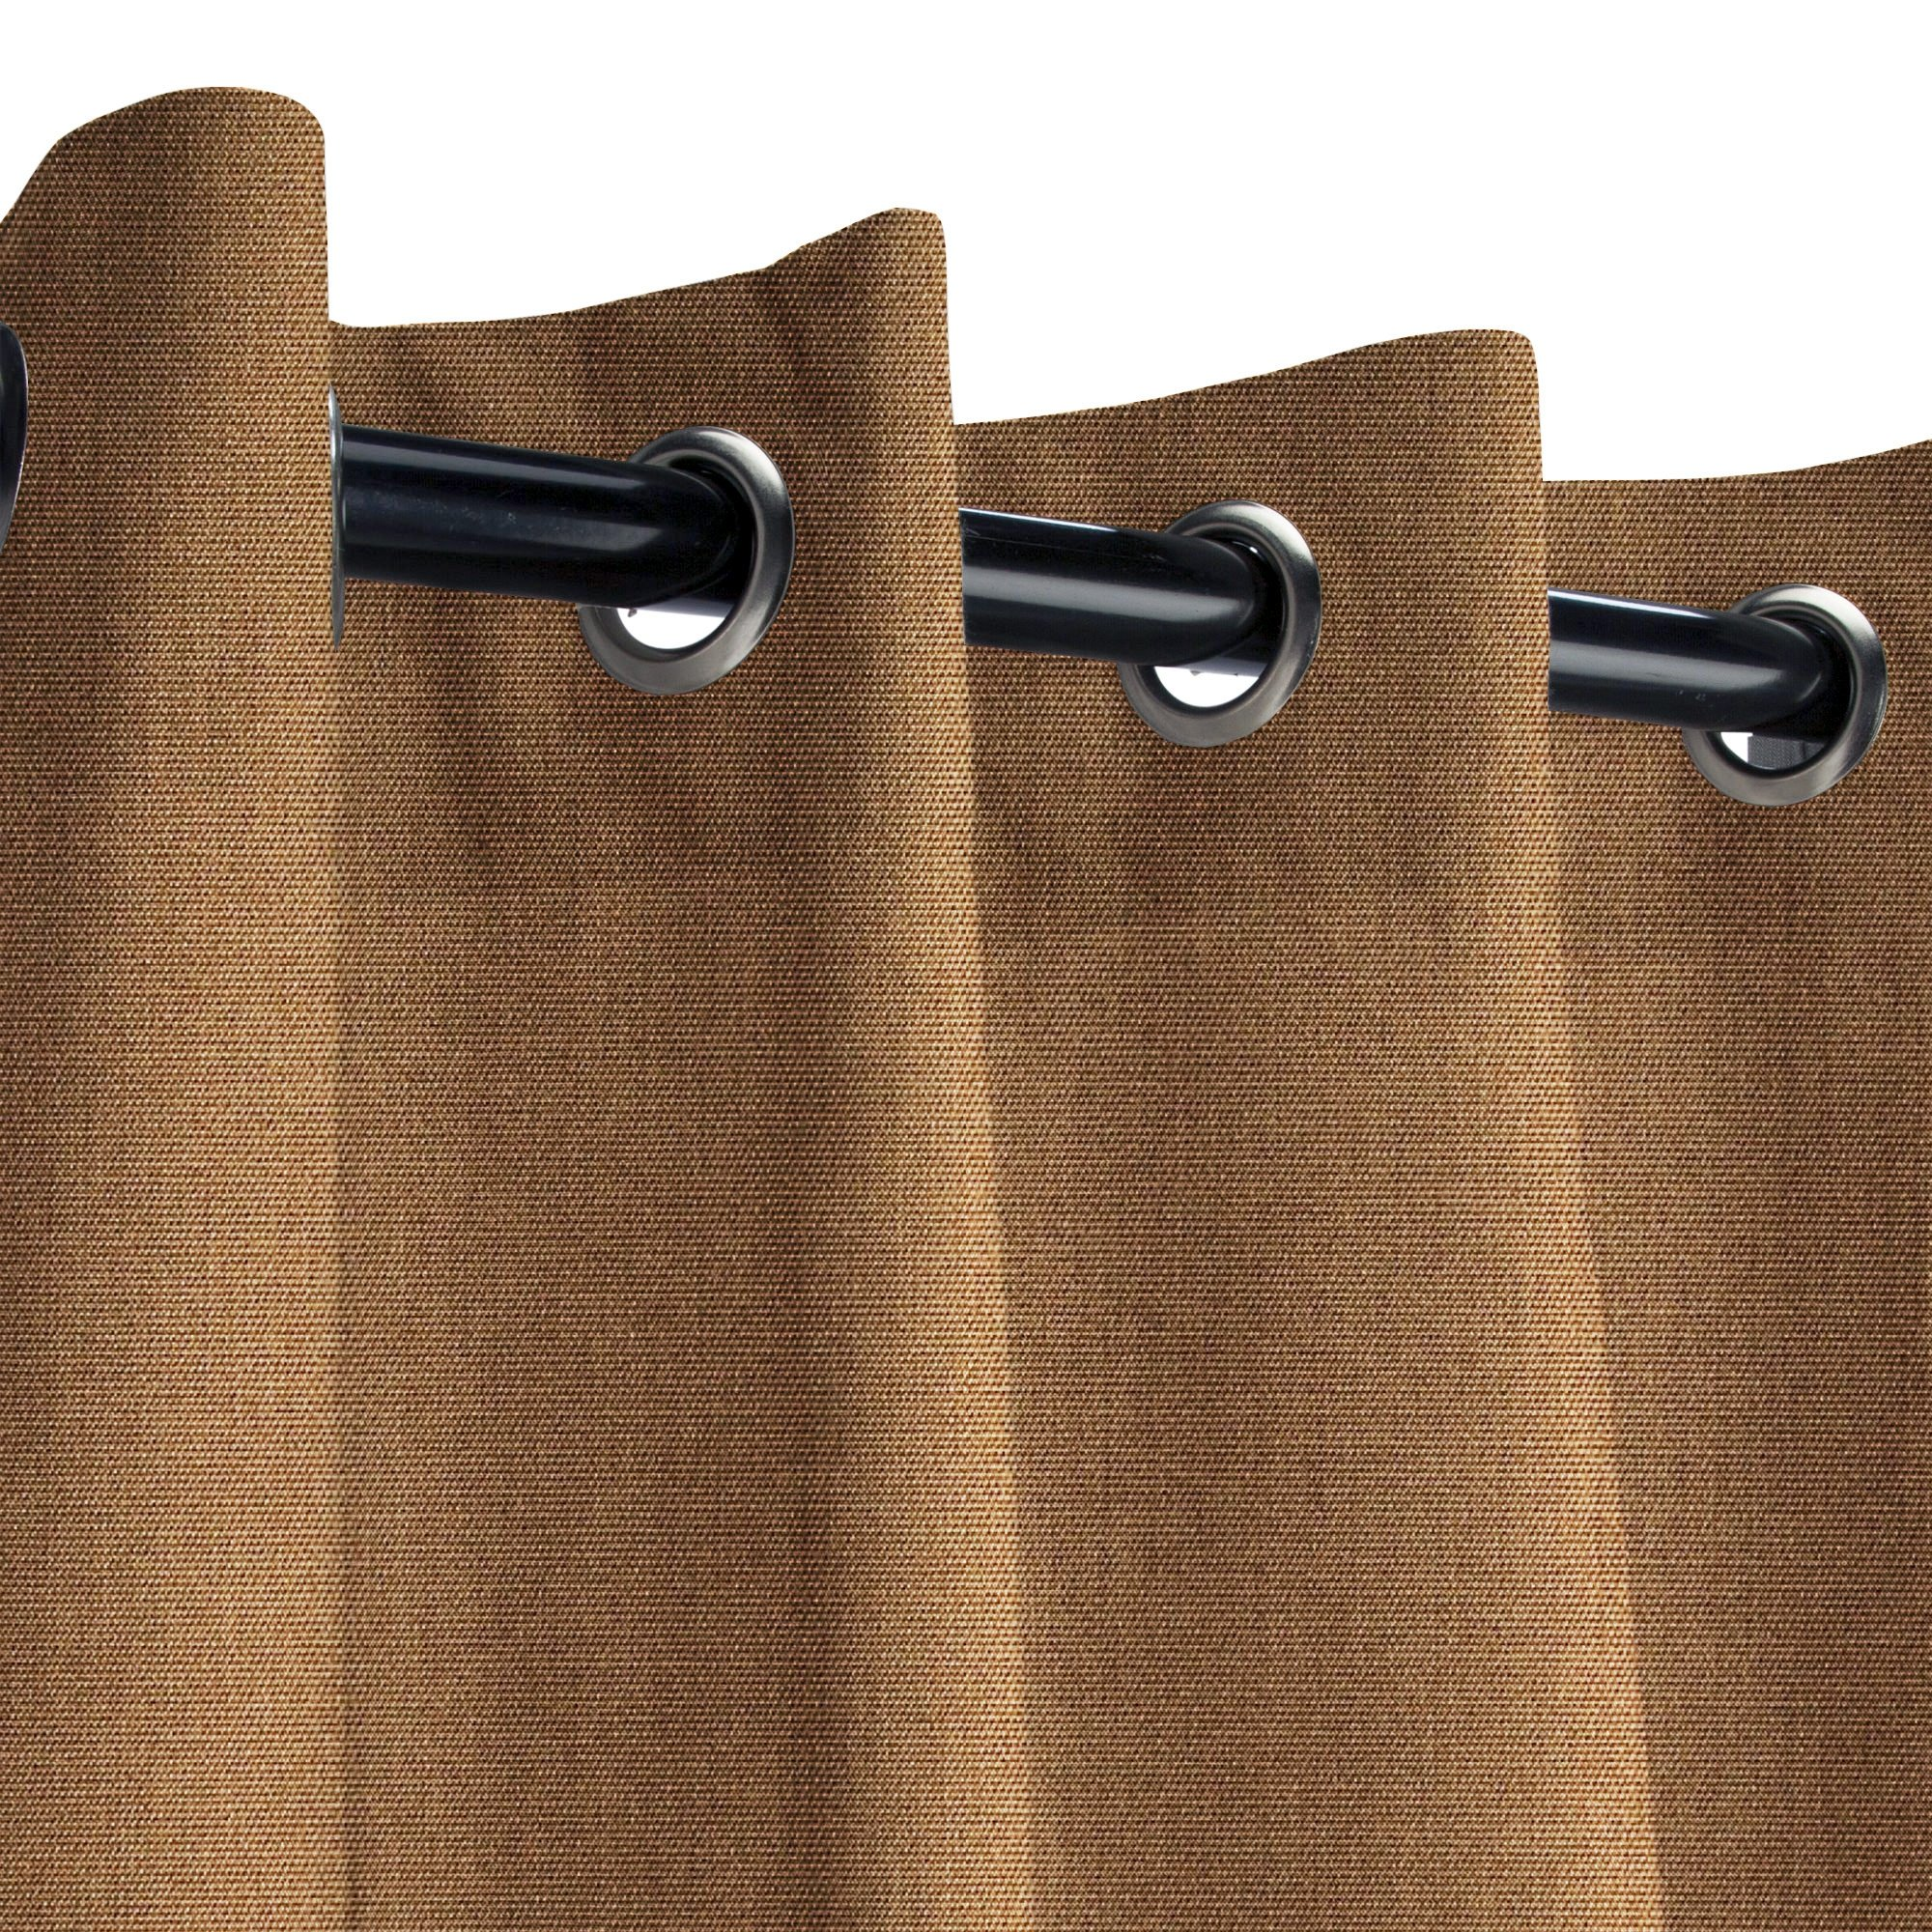 Sunbrella Canvas Chestnut Outdoor Curtain with Nickel Grommets 50 in. Wide x 120 in. Long